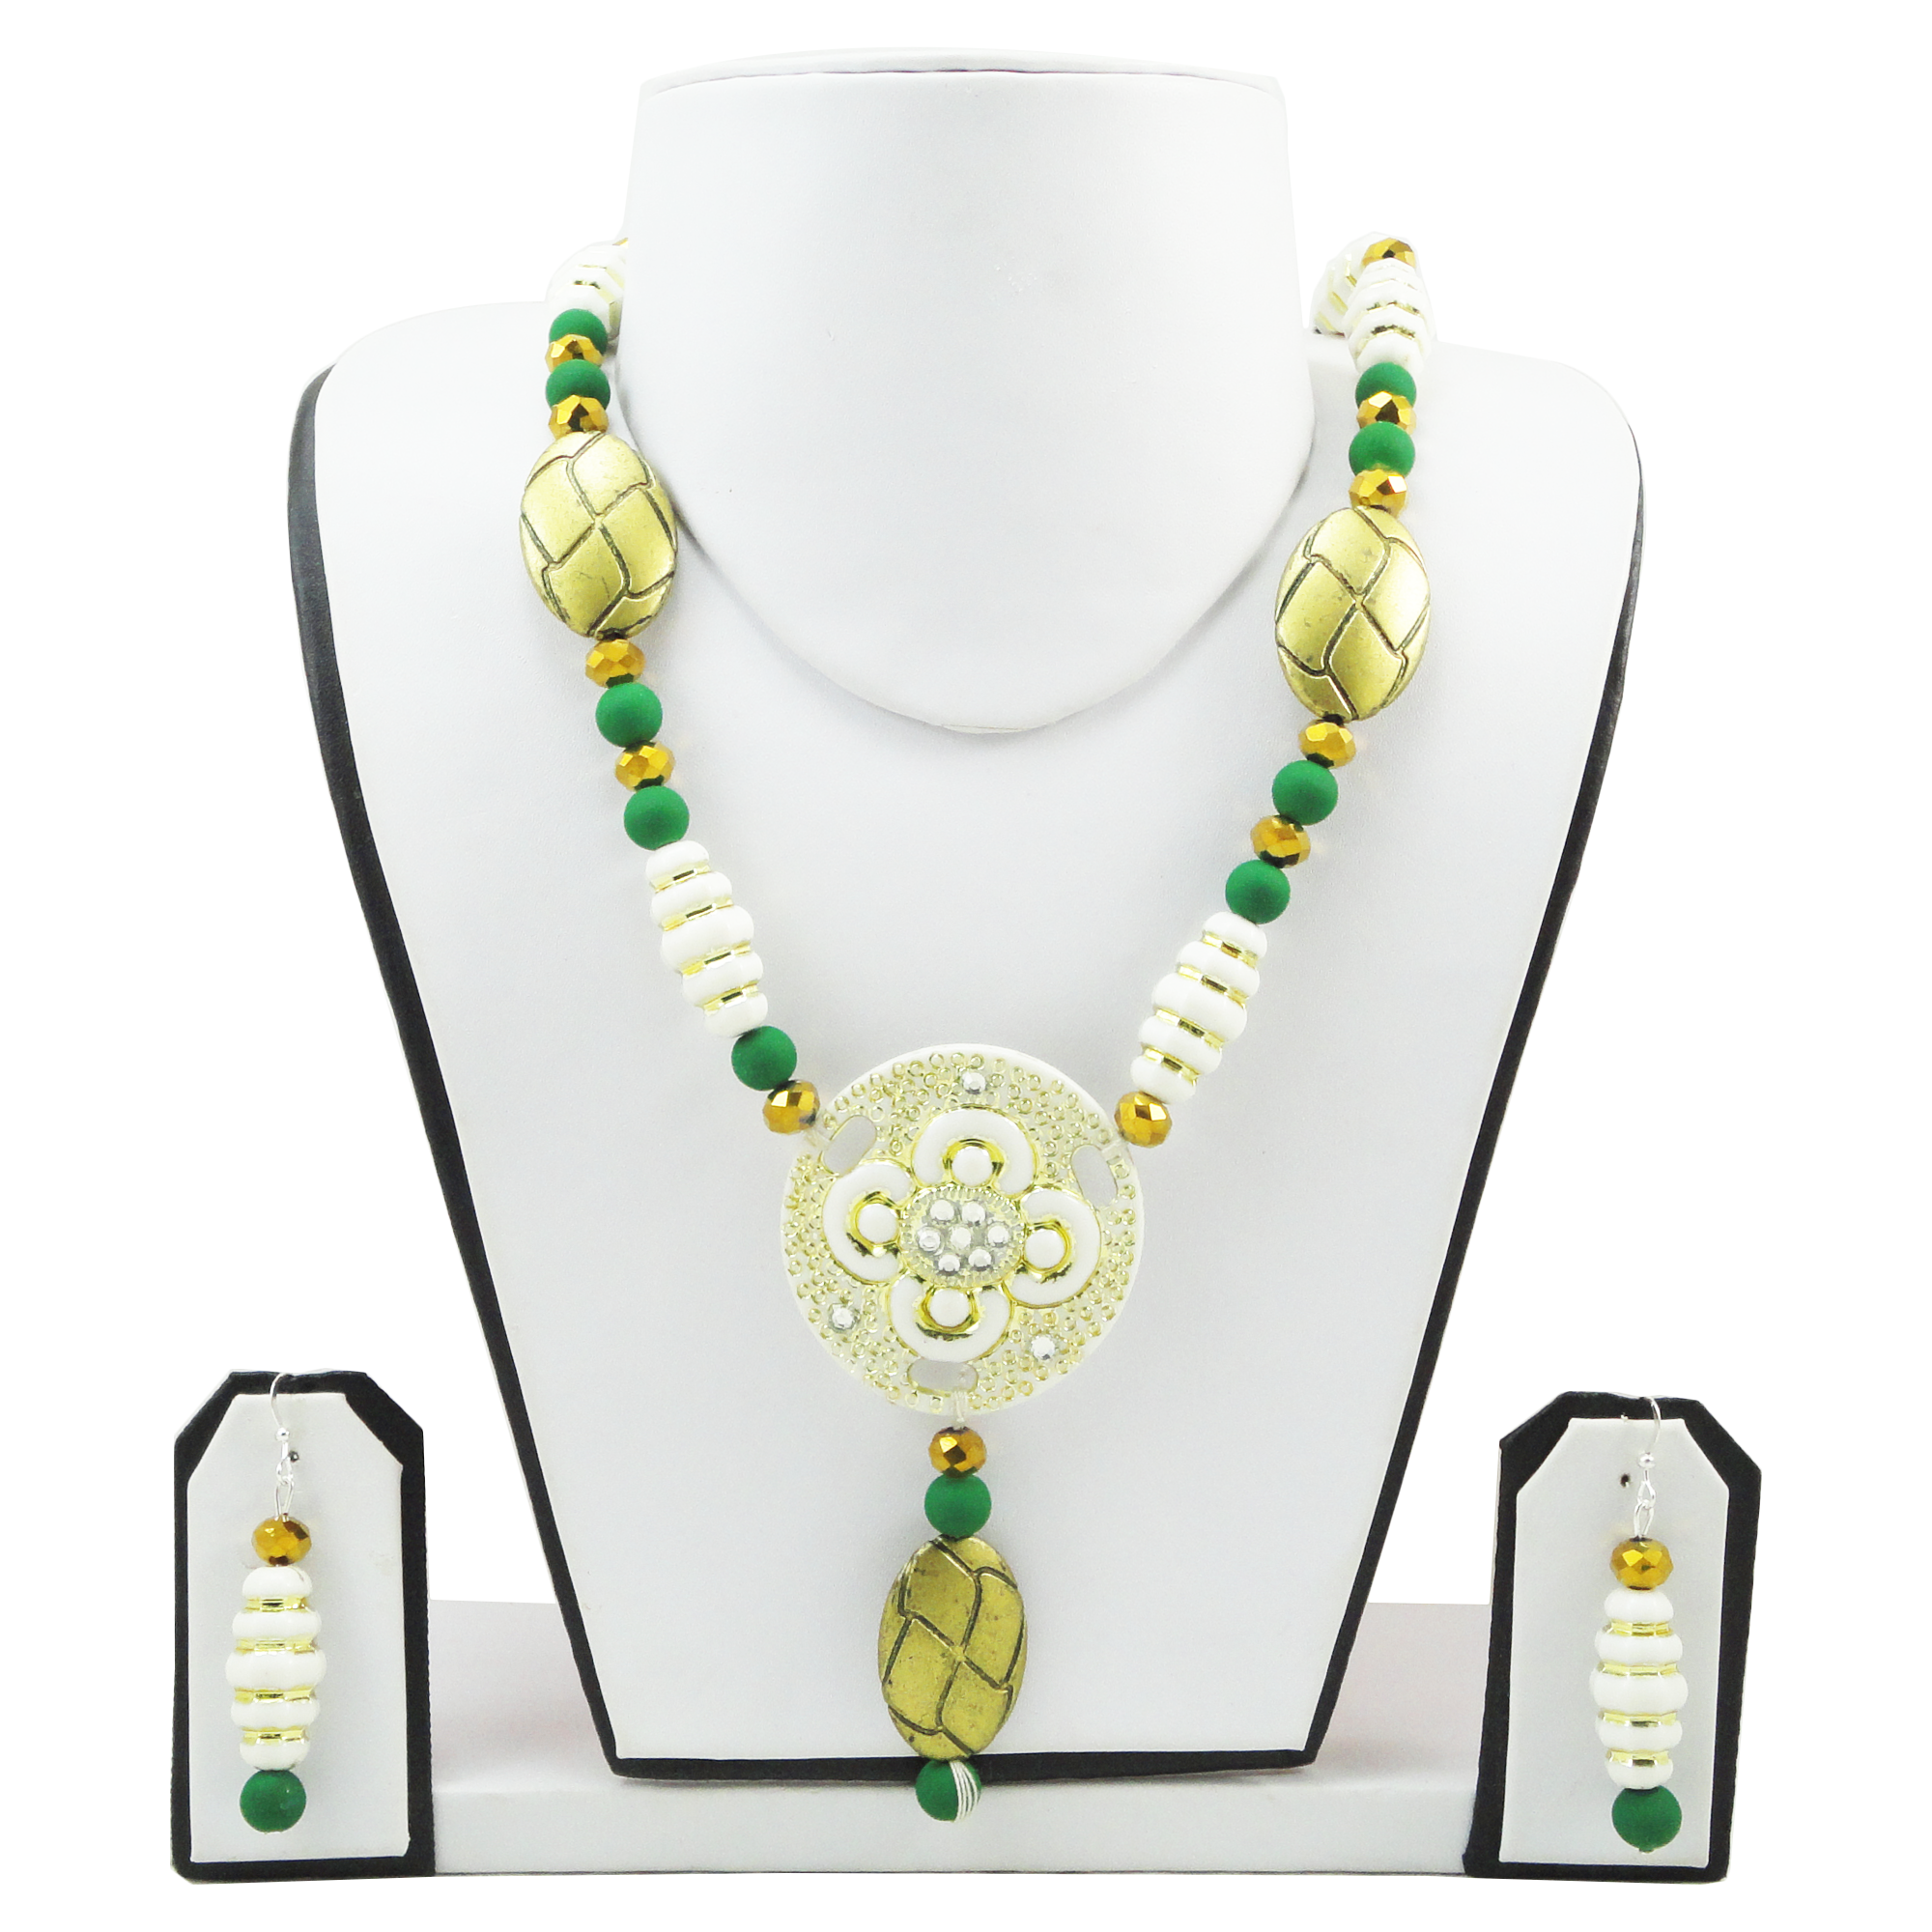 Green Beads Designer Necklace #onlineshopping #handmade #jewellery fashionvalley.in